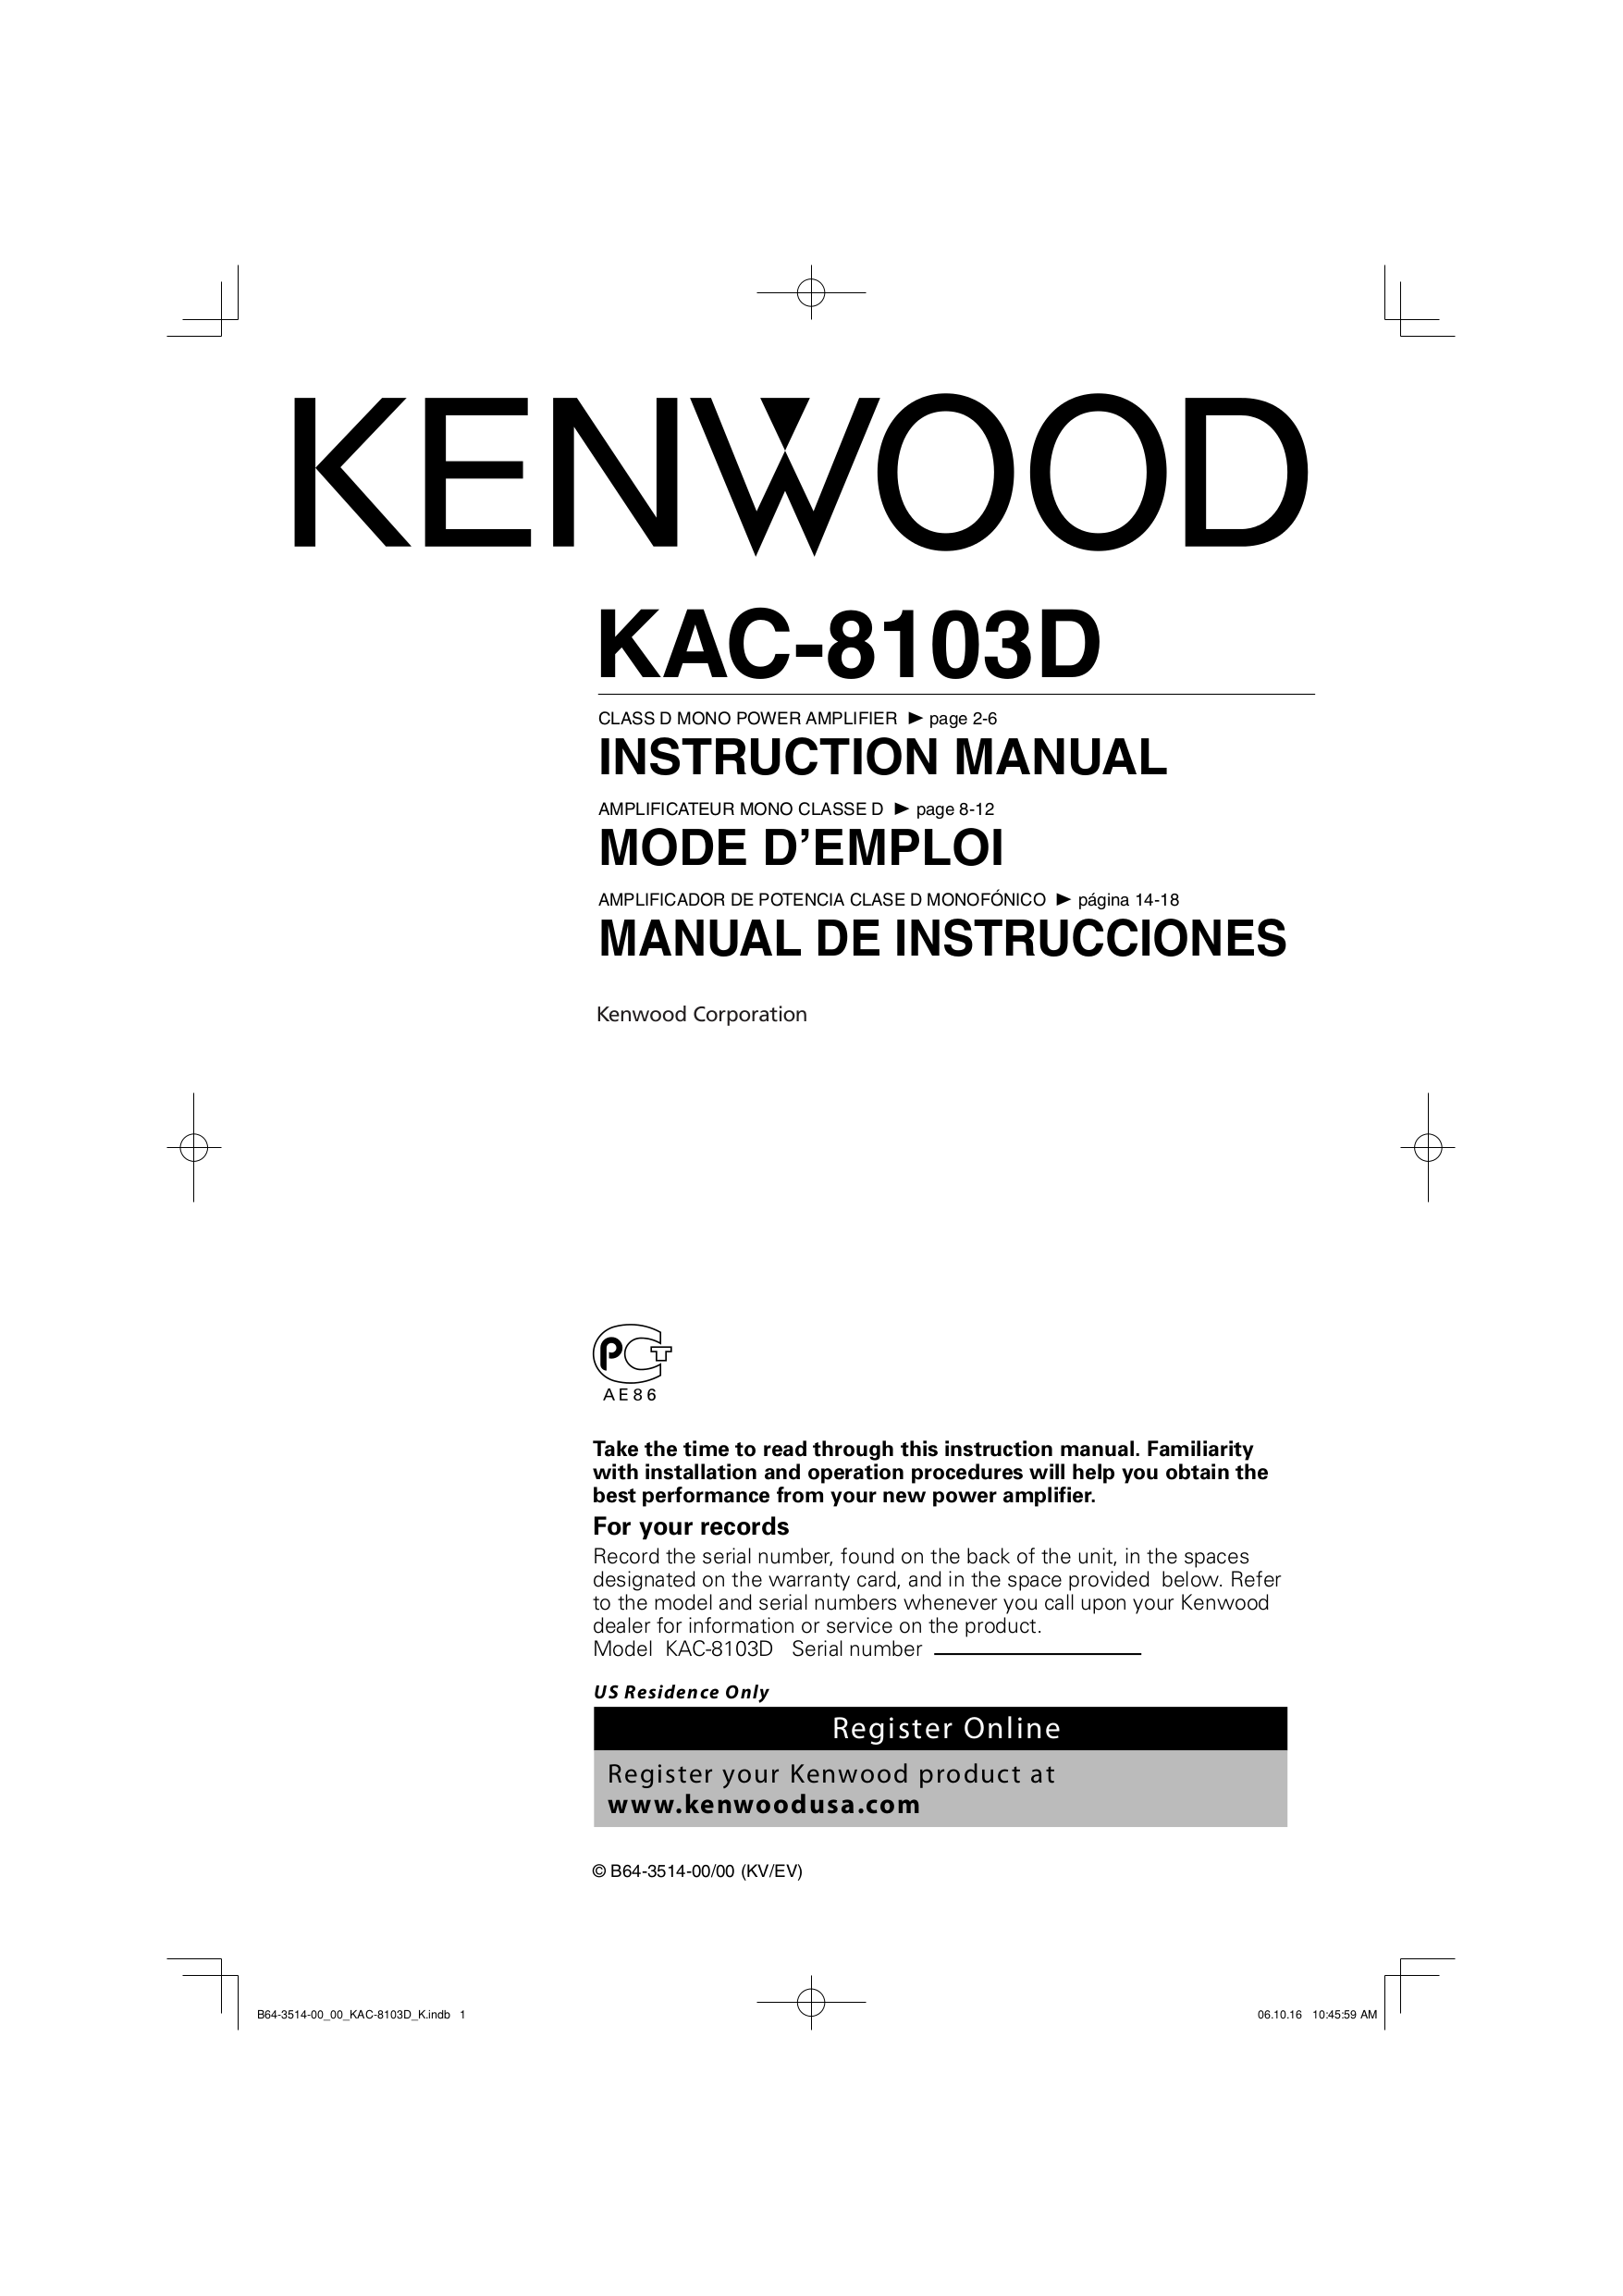 B64 3514 00.pdf 0 wiring diagram for kenwood kac 8103d wiring diagram and schematic kenwood kac-8103d wiring diagram at crackthecode.co